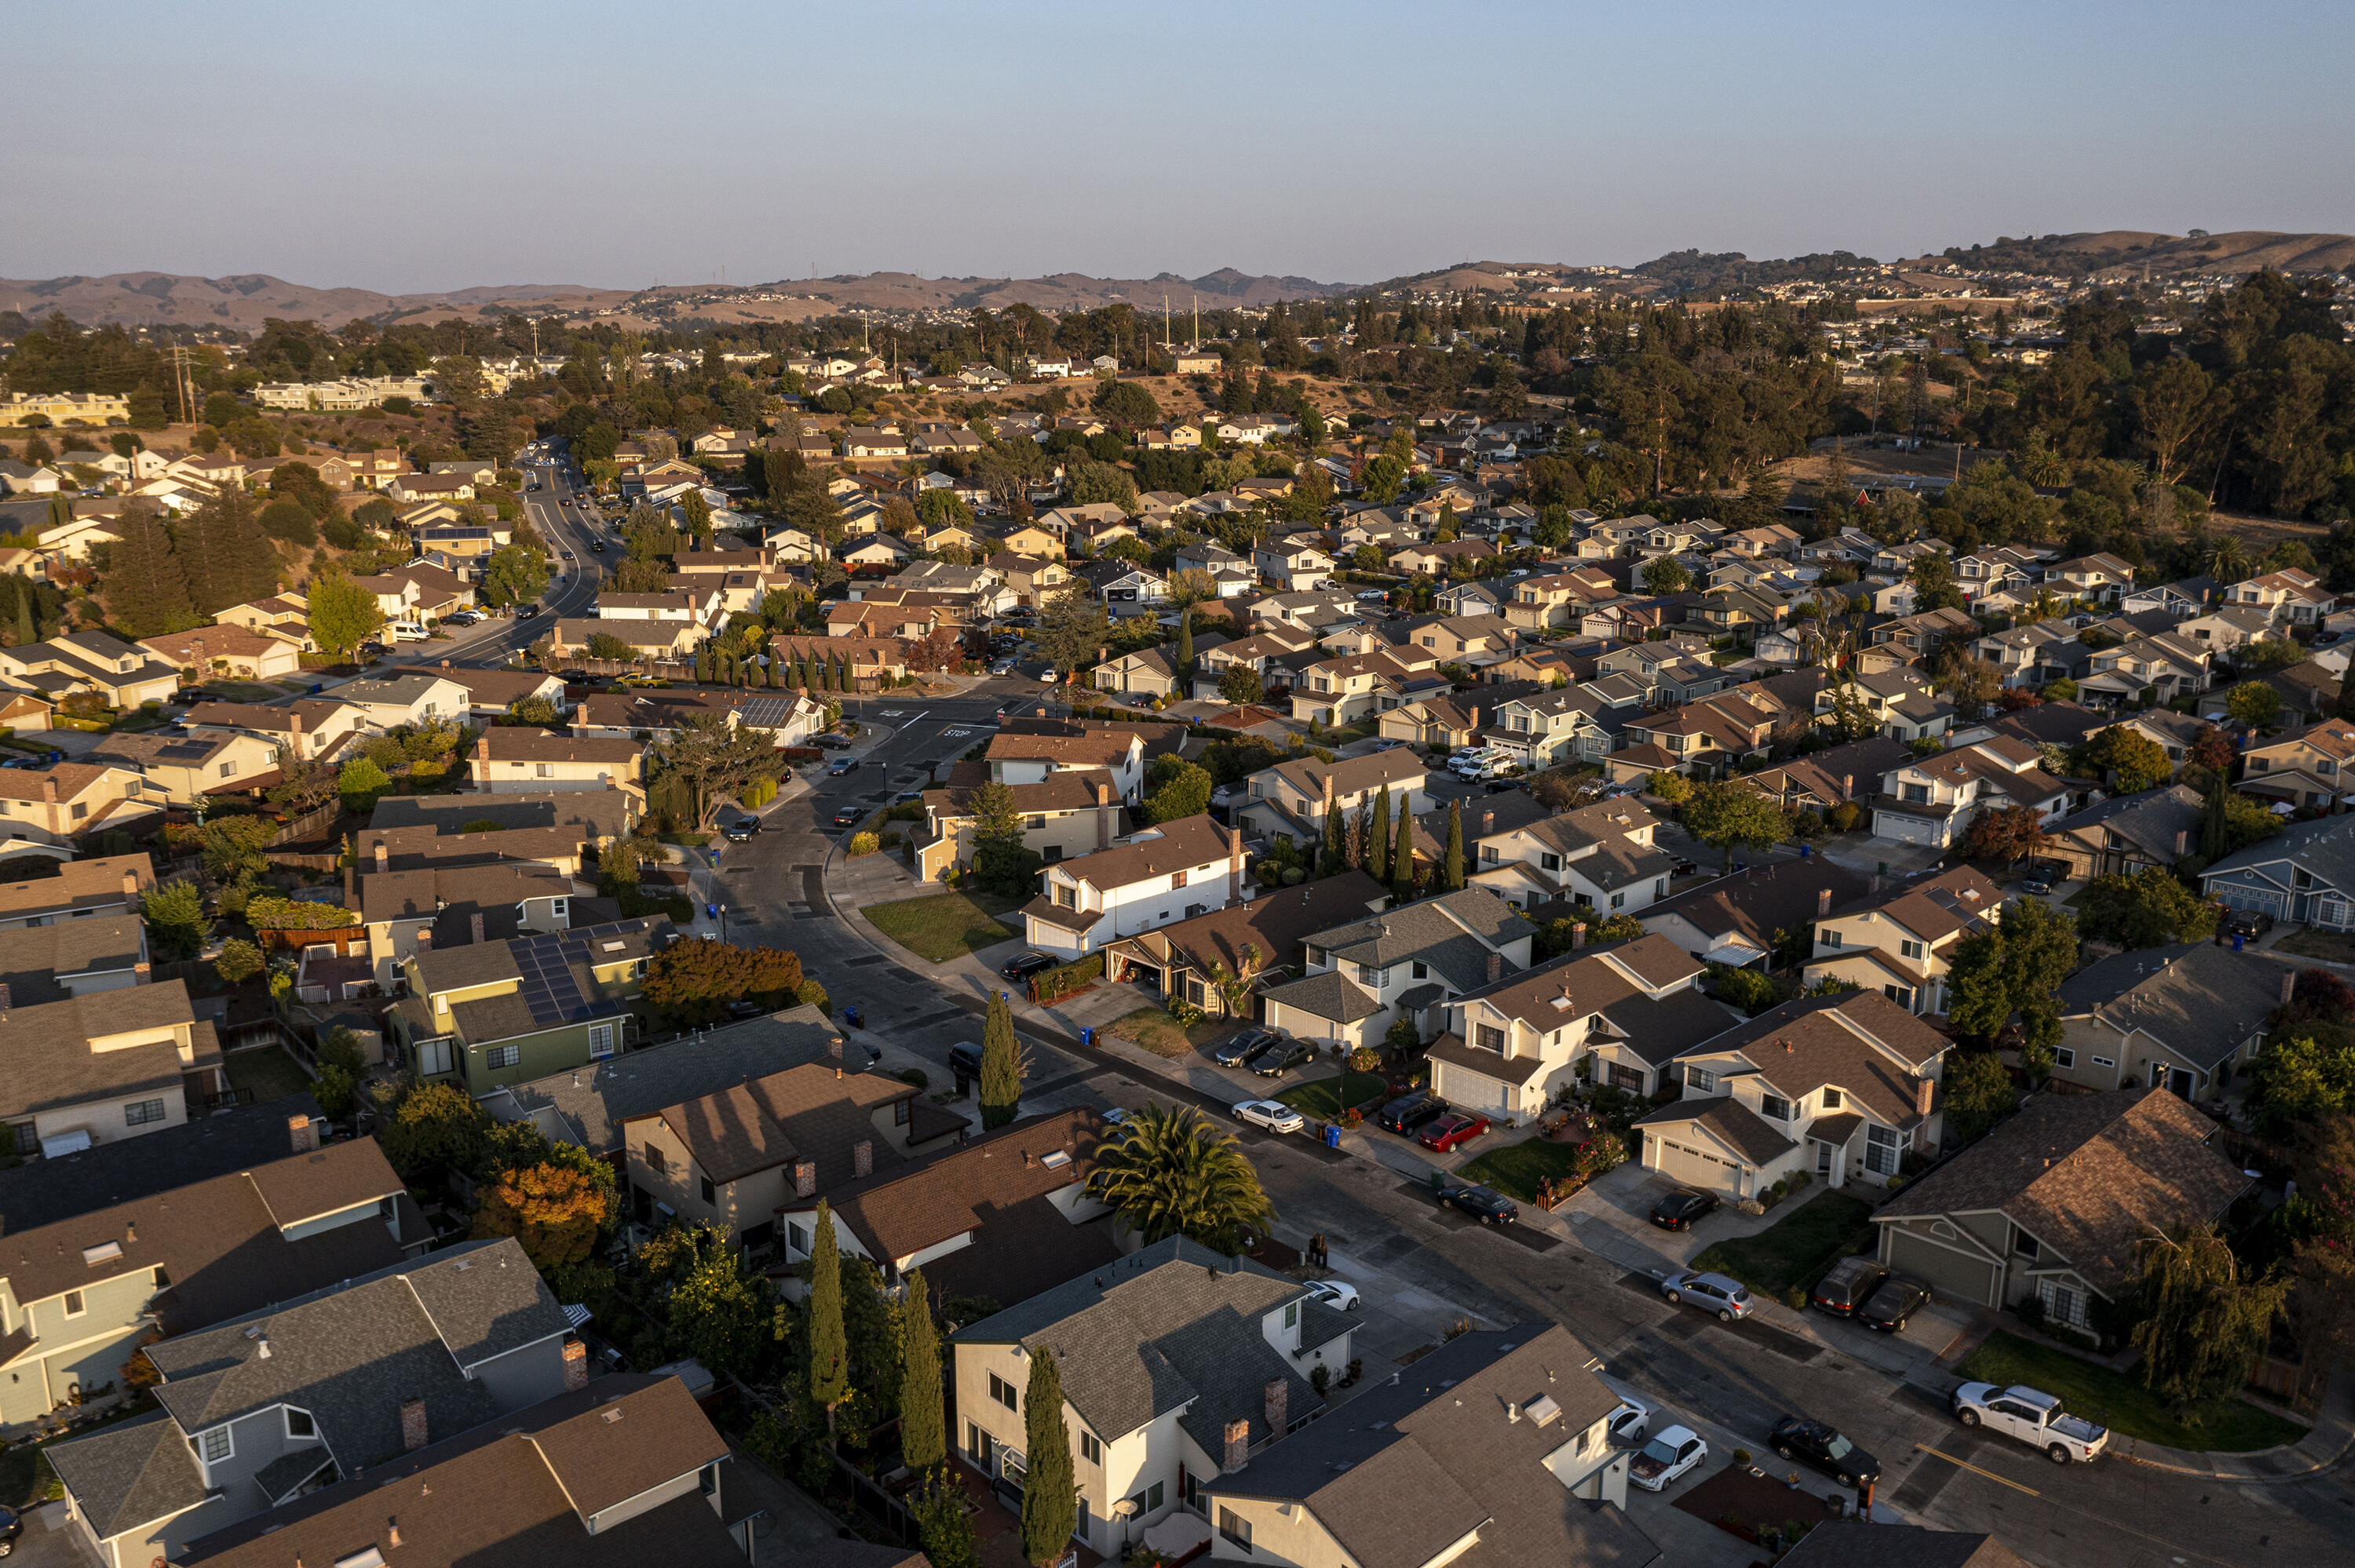 Home sales have slowed, but prices are still ludicrous